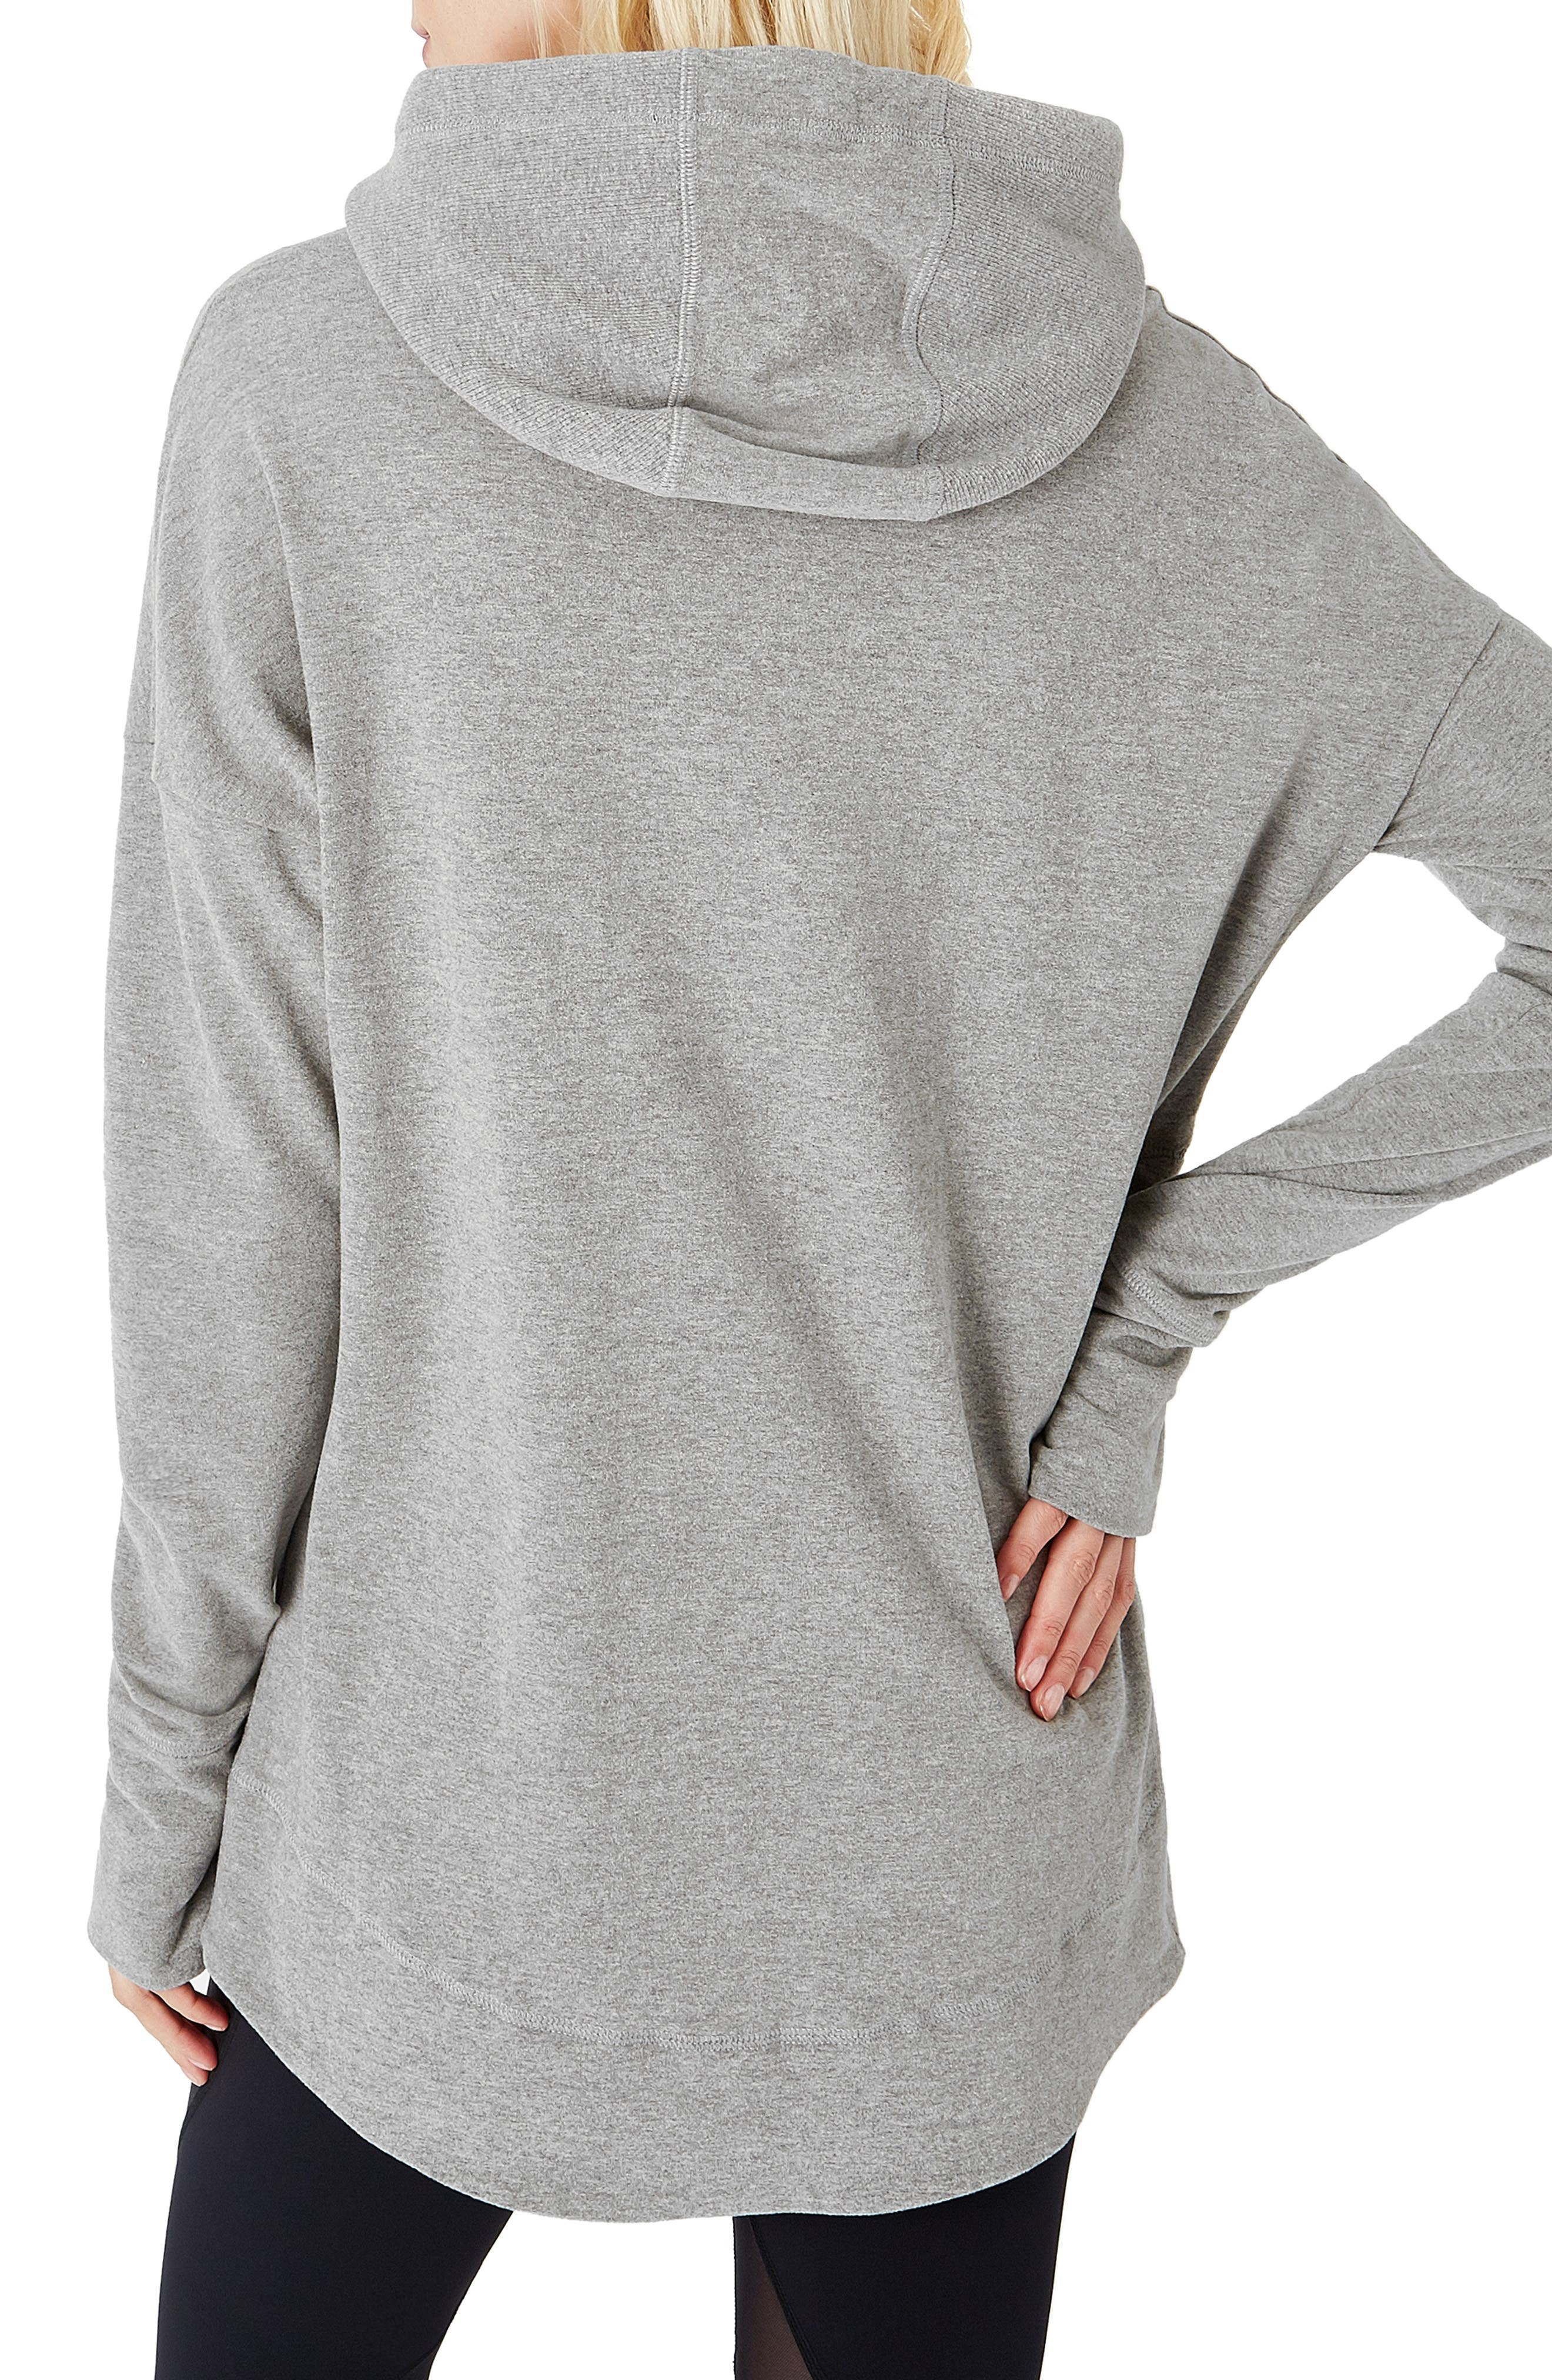 Invigorate Luxe Hoodie,                             Alternate thumbnail 2, color,                             LIGHT GREY MARL